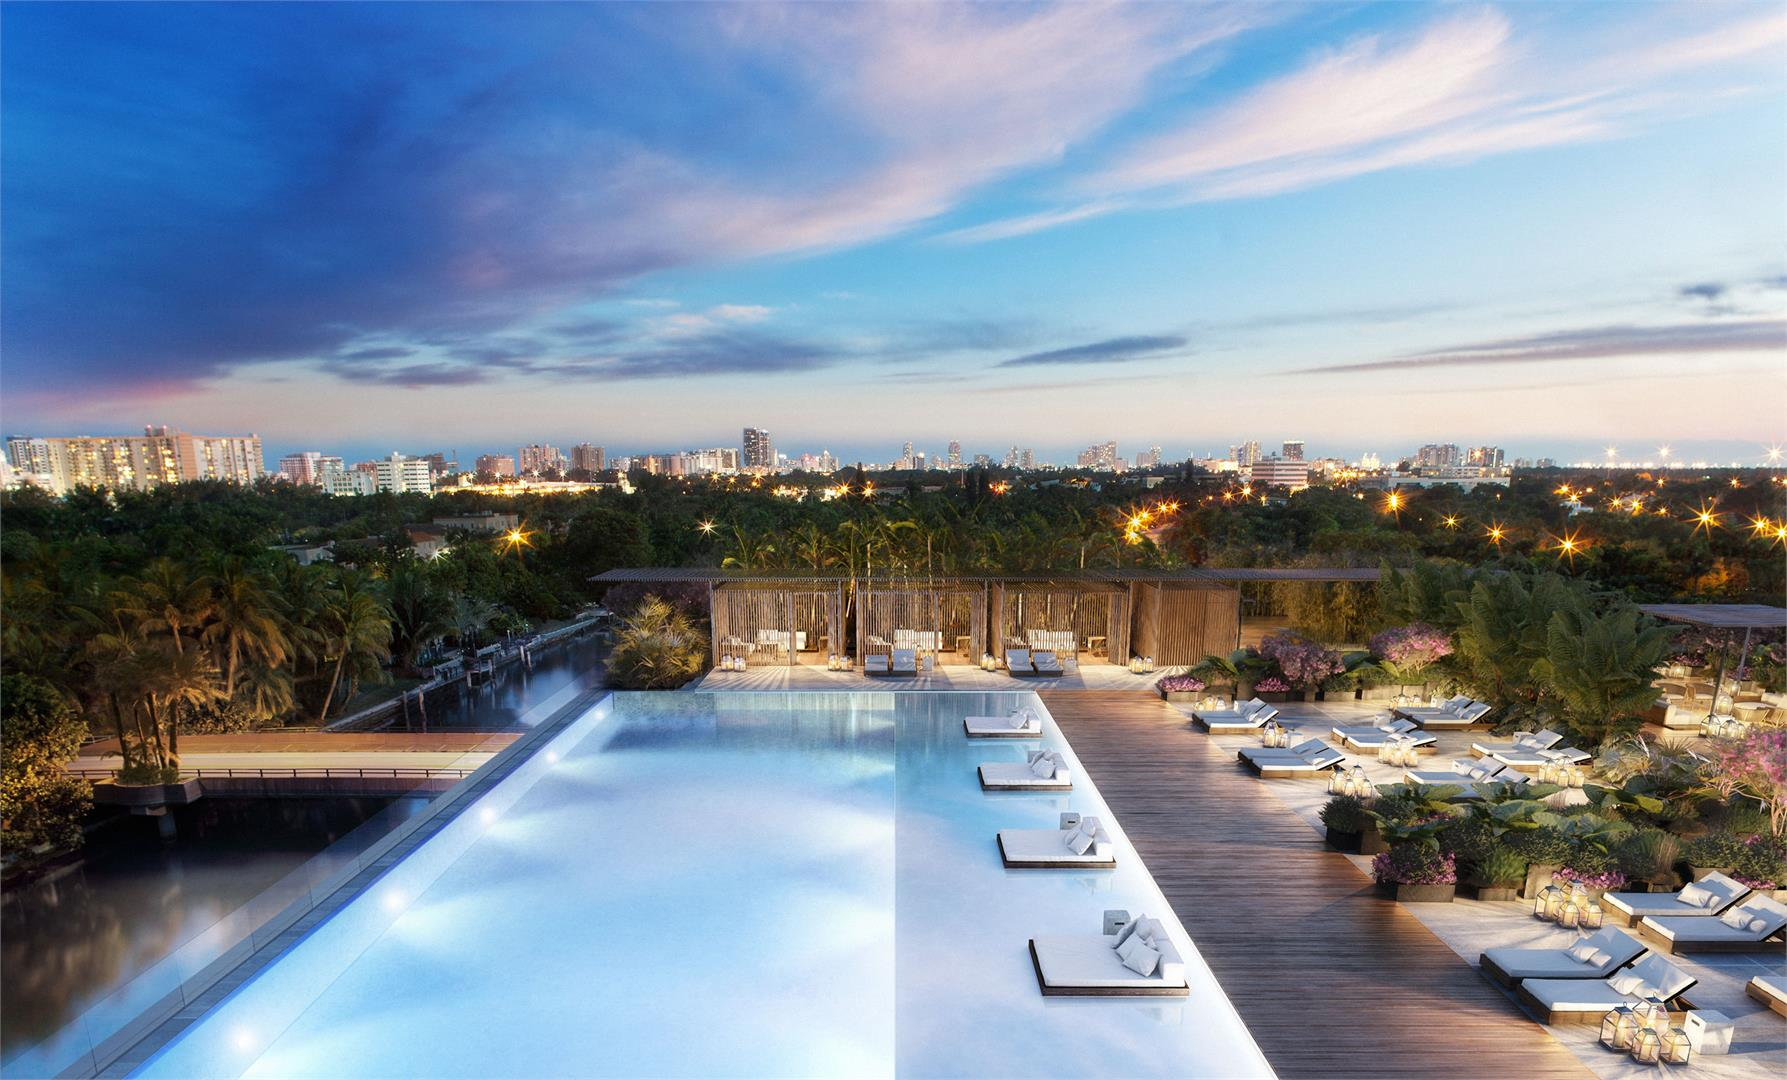 The Ritz-Carlton Residences - Image 6